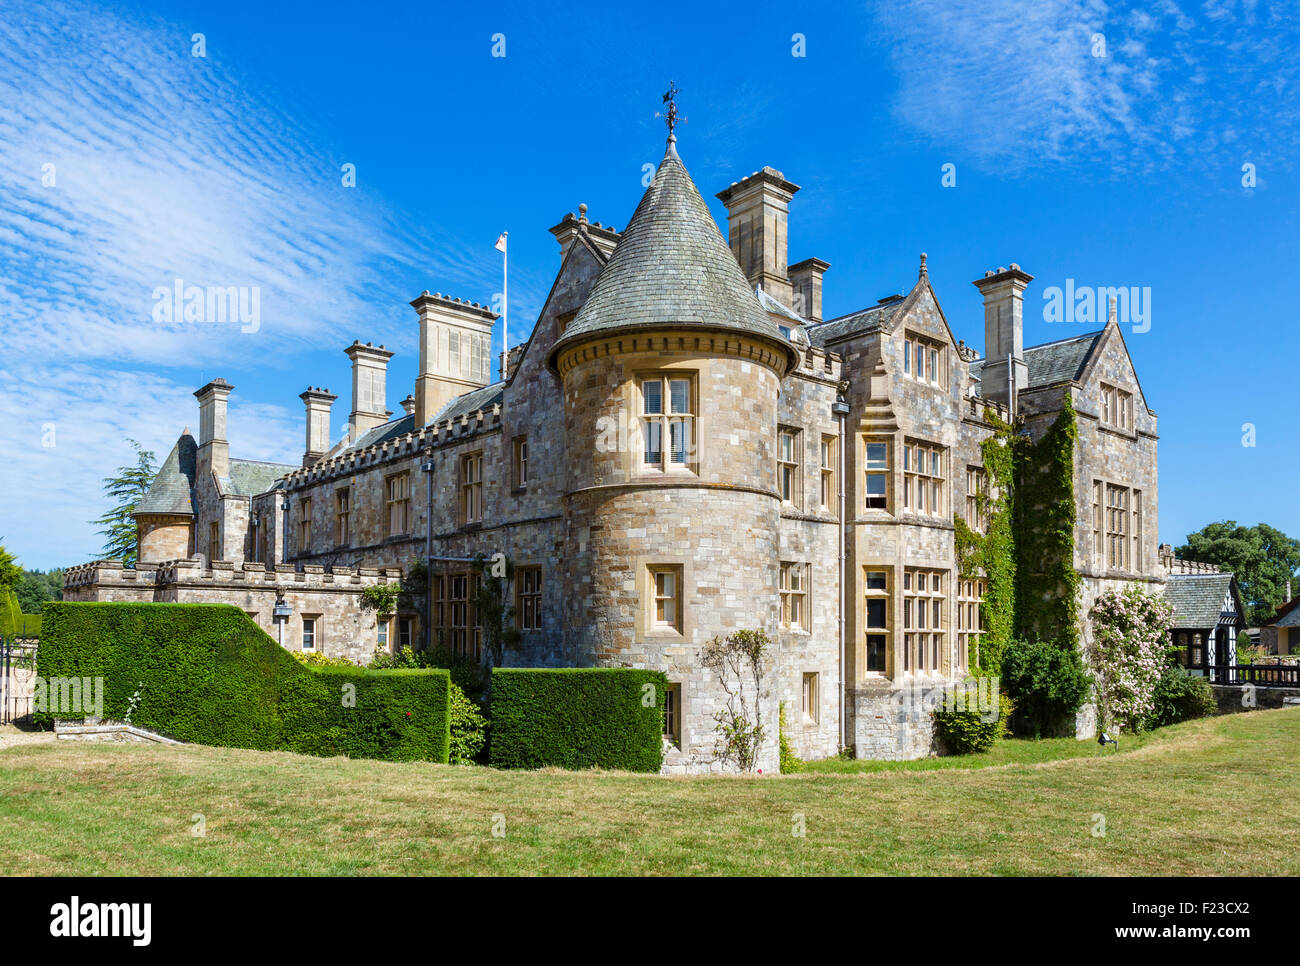 Beaulieu Palace House, home of the Barons Montagu, Beaulieu, Hampshire, England, UK - Stock Image